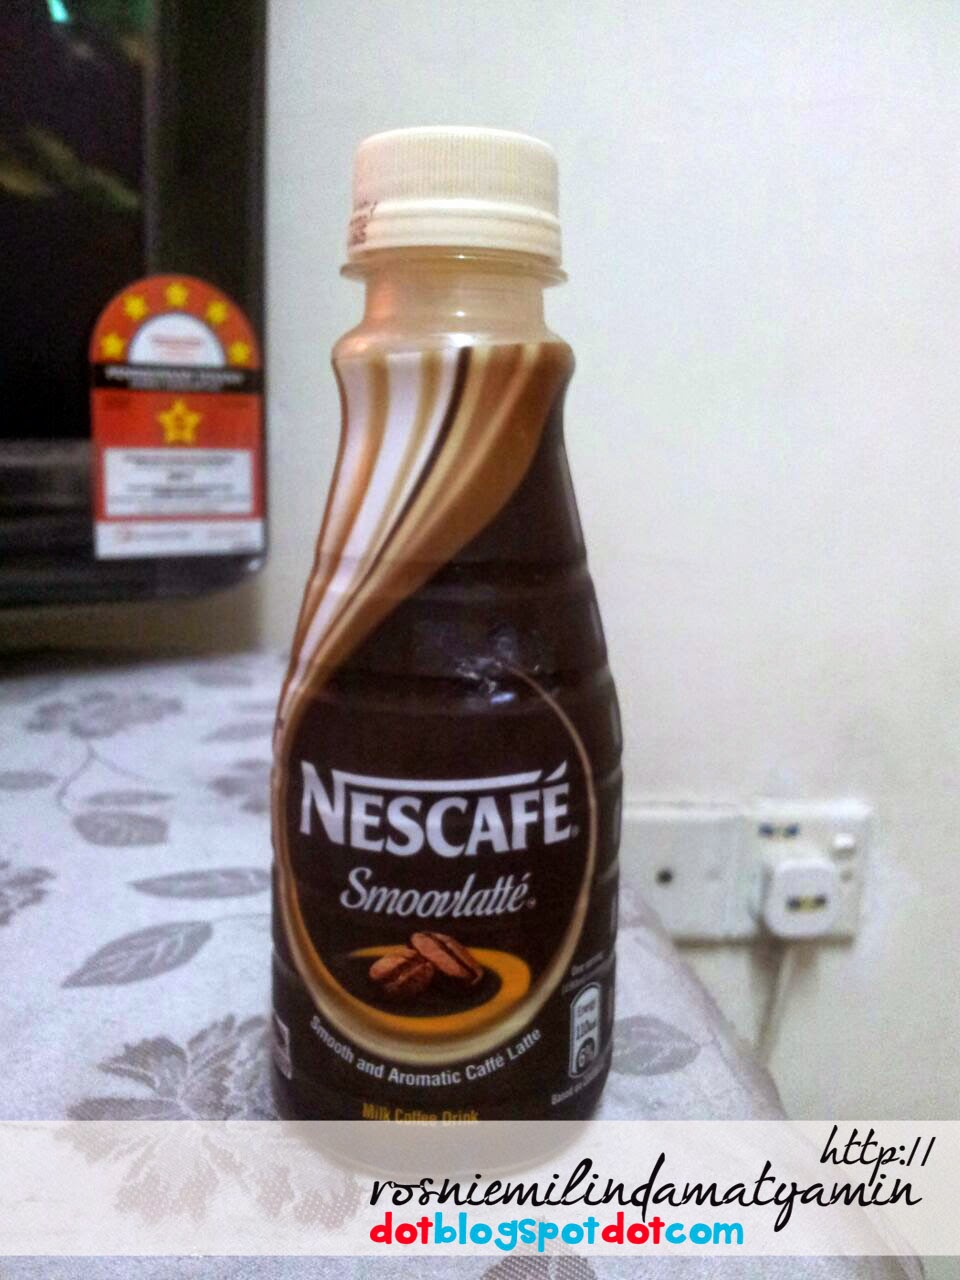 Nescafe Smoovlatte.